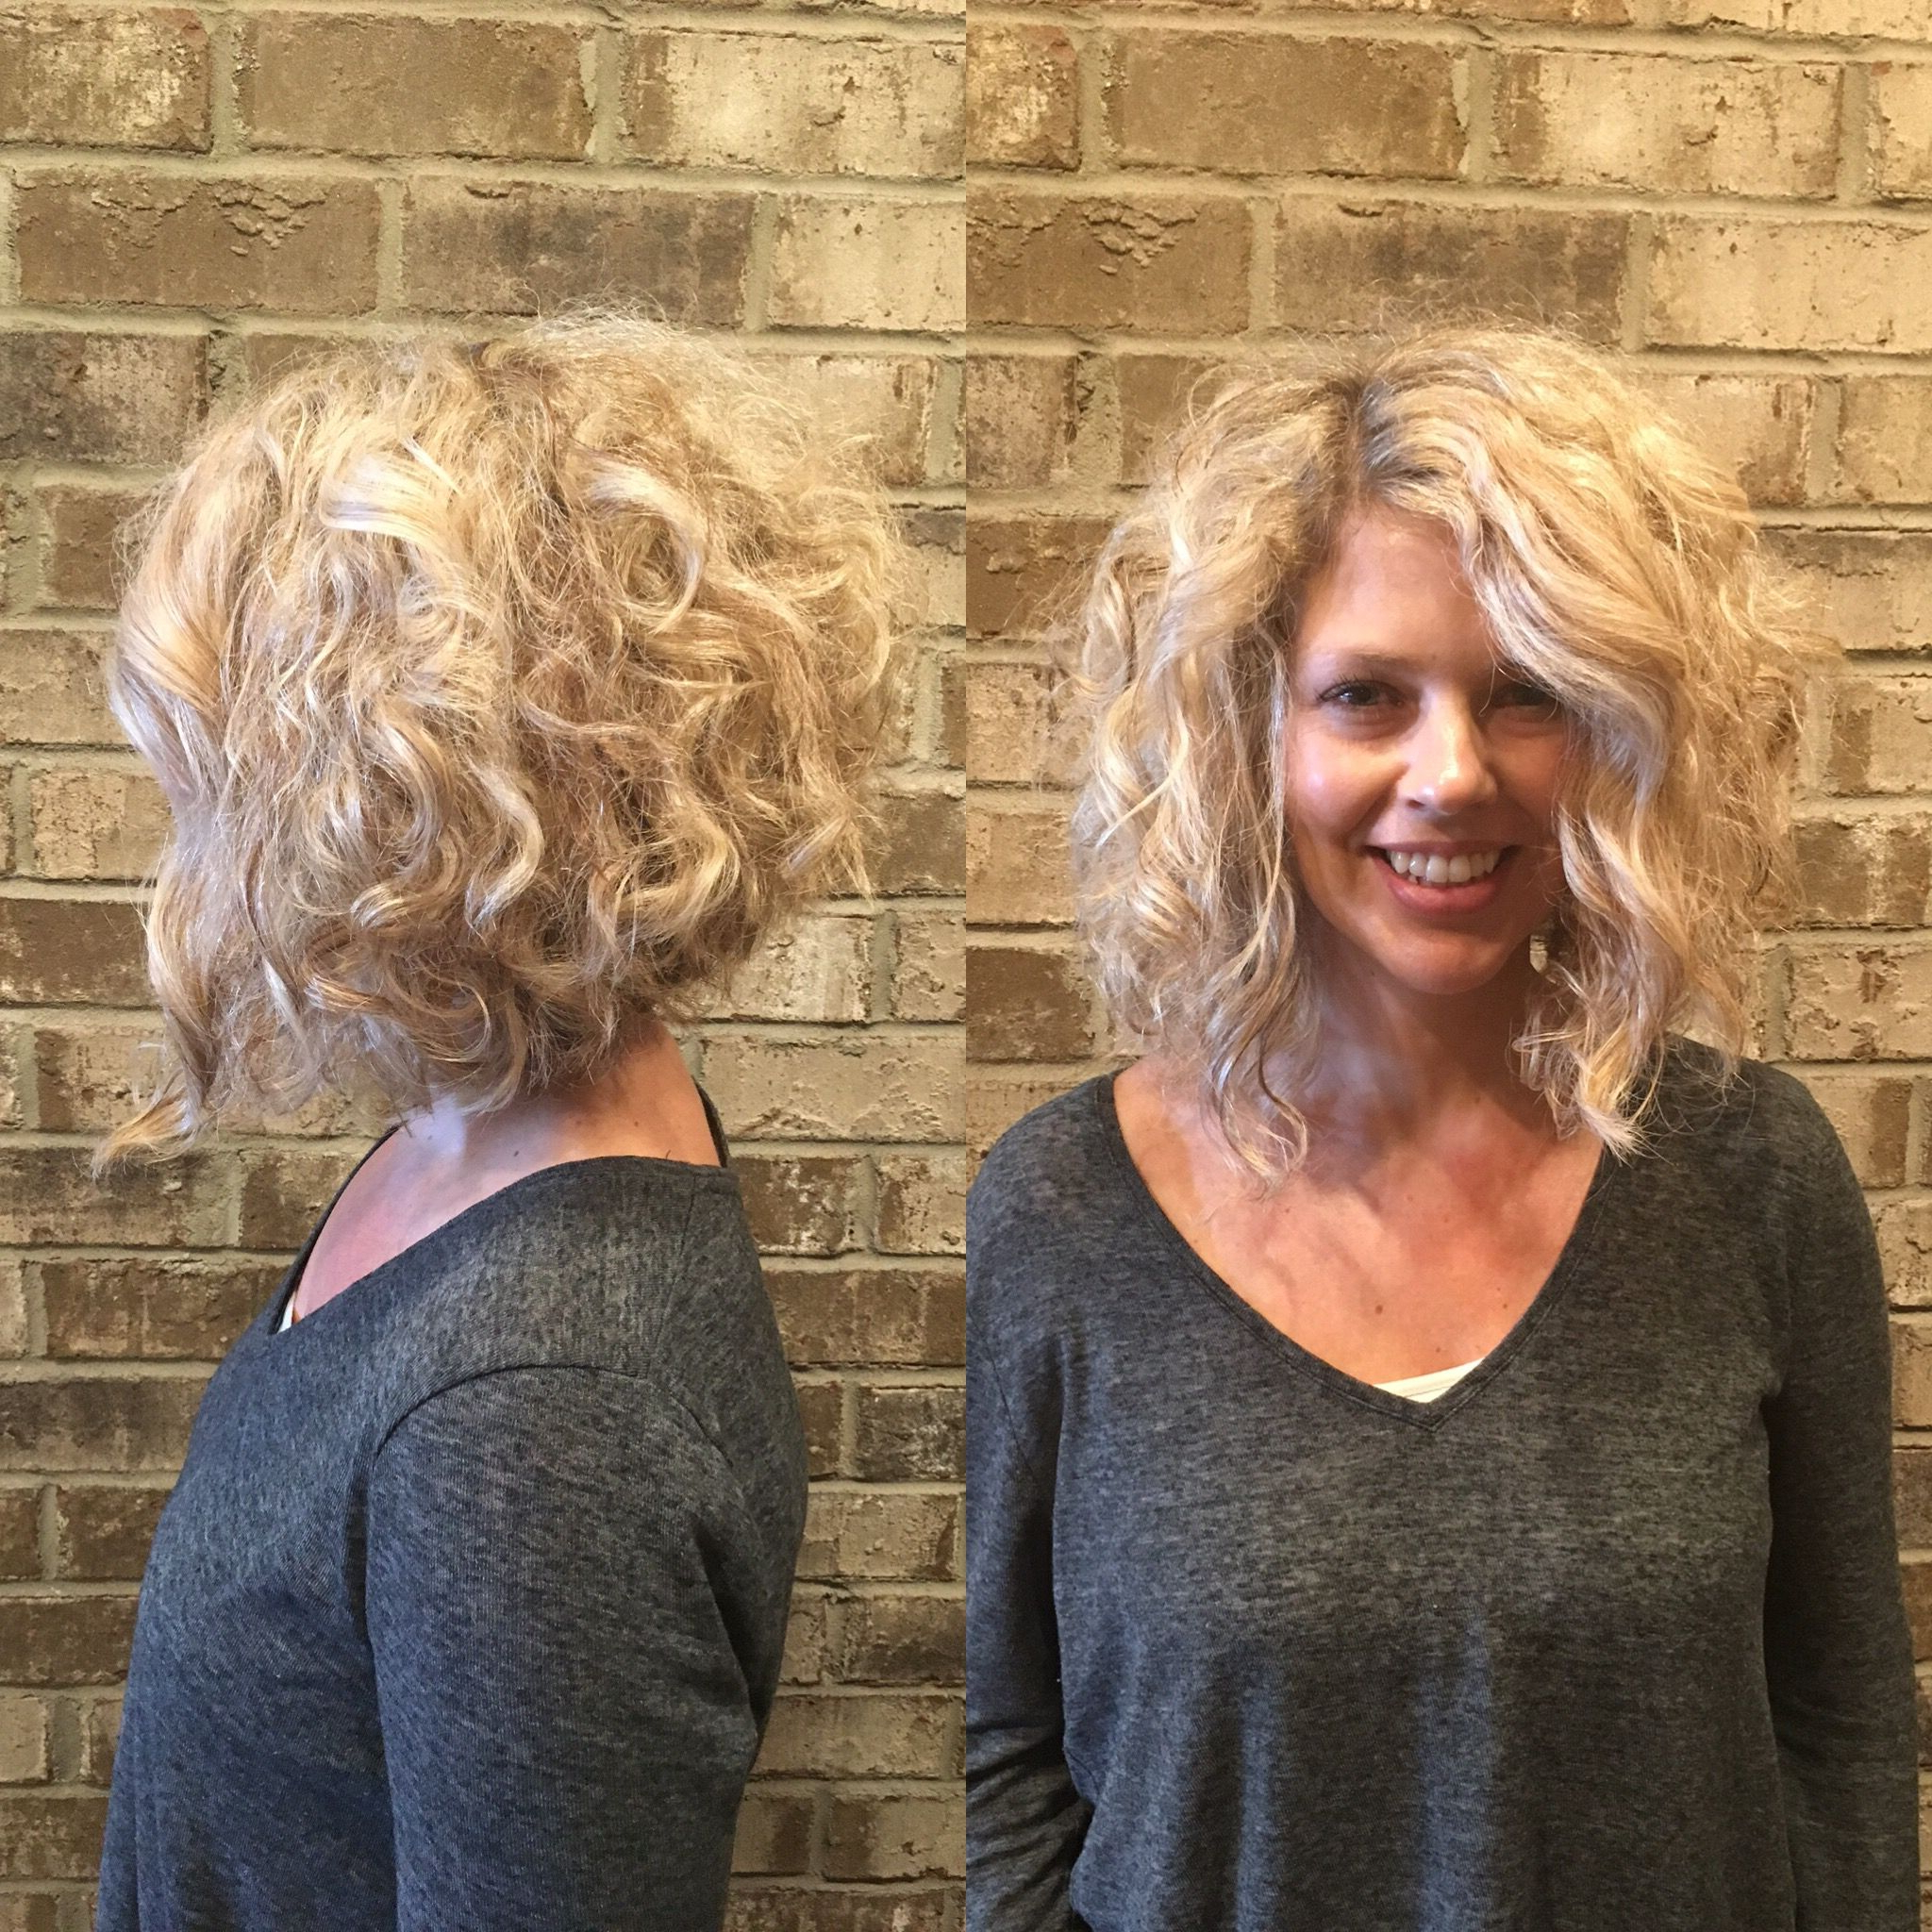 Which Hairstyle Suits Me Best | Curly Bob Hairstyles | Pinterest With Regard To Playful Blonde Curls Hairstyles (View 19 of 20)